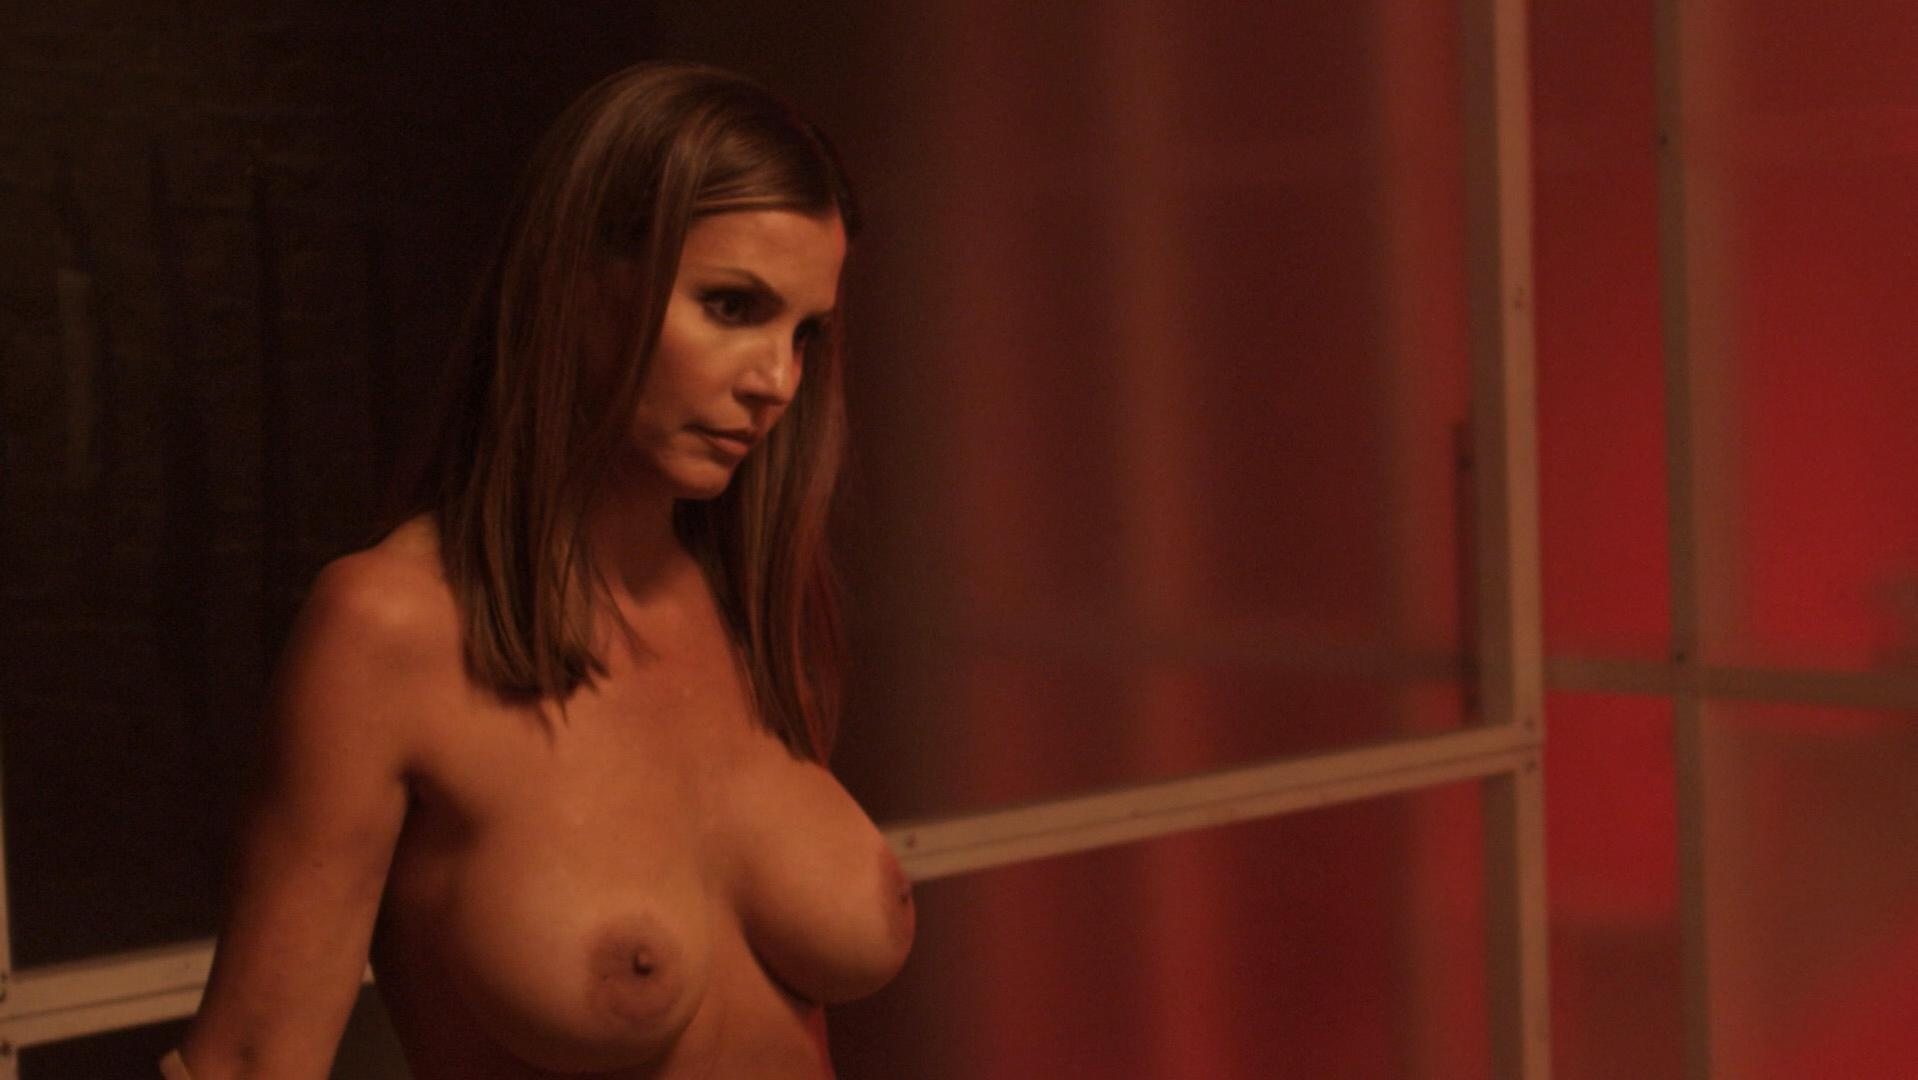 Sorry, that Charisma carpenter nude photos thought differently